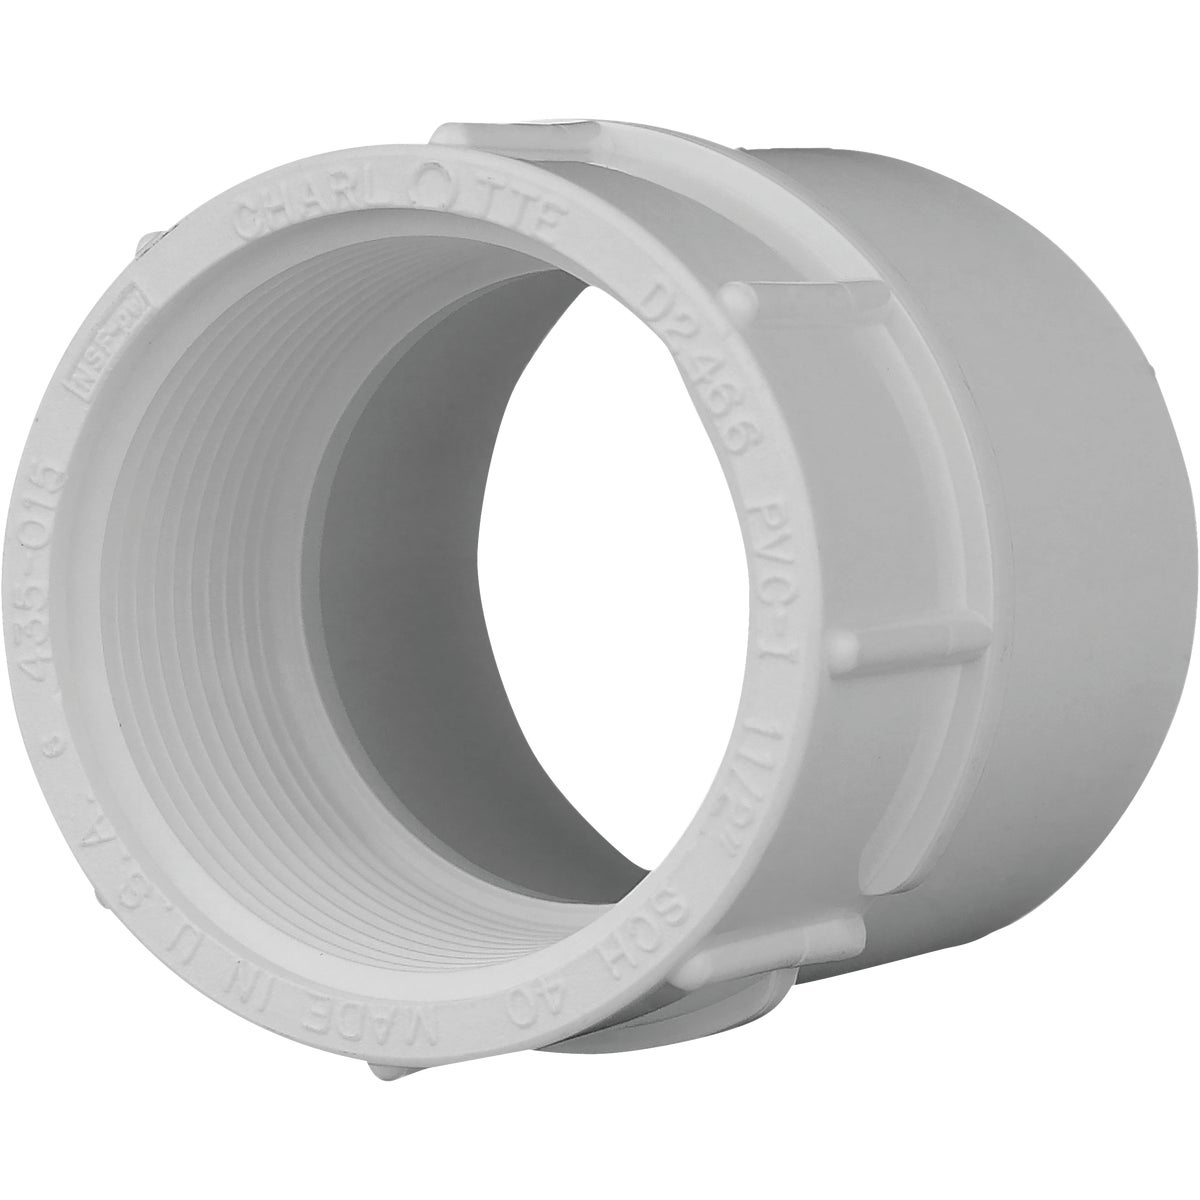 "1-1/2"" PVC SXFIP ADAPTER - 30315 by Genova Inc"